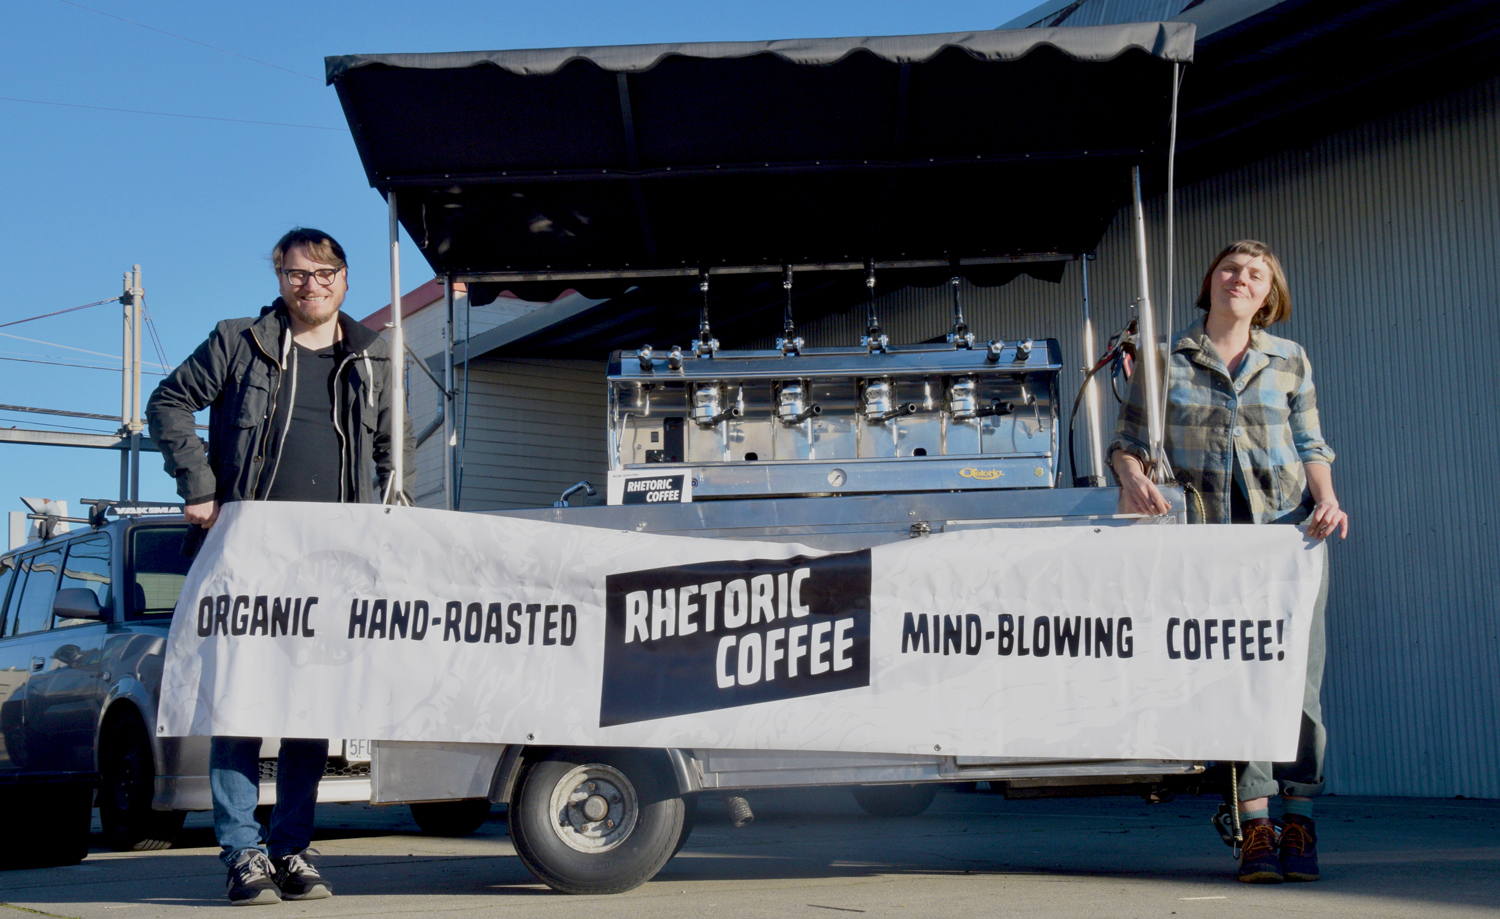 James and Ruthie with  their newly polished cart, all ready for Rhetoric Outside's first day of coffee service at the Temescal Farmers' Market, February 3, 2019.